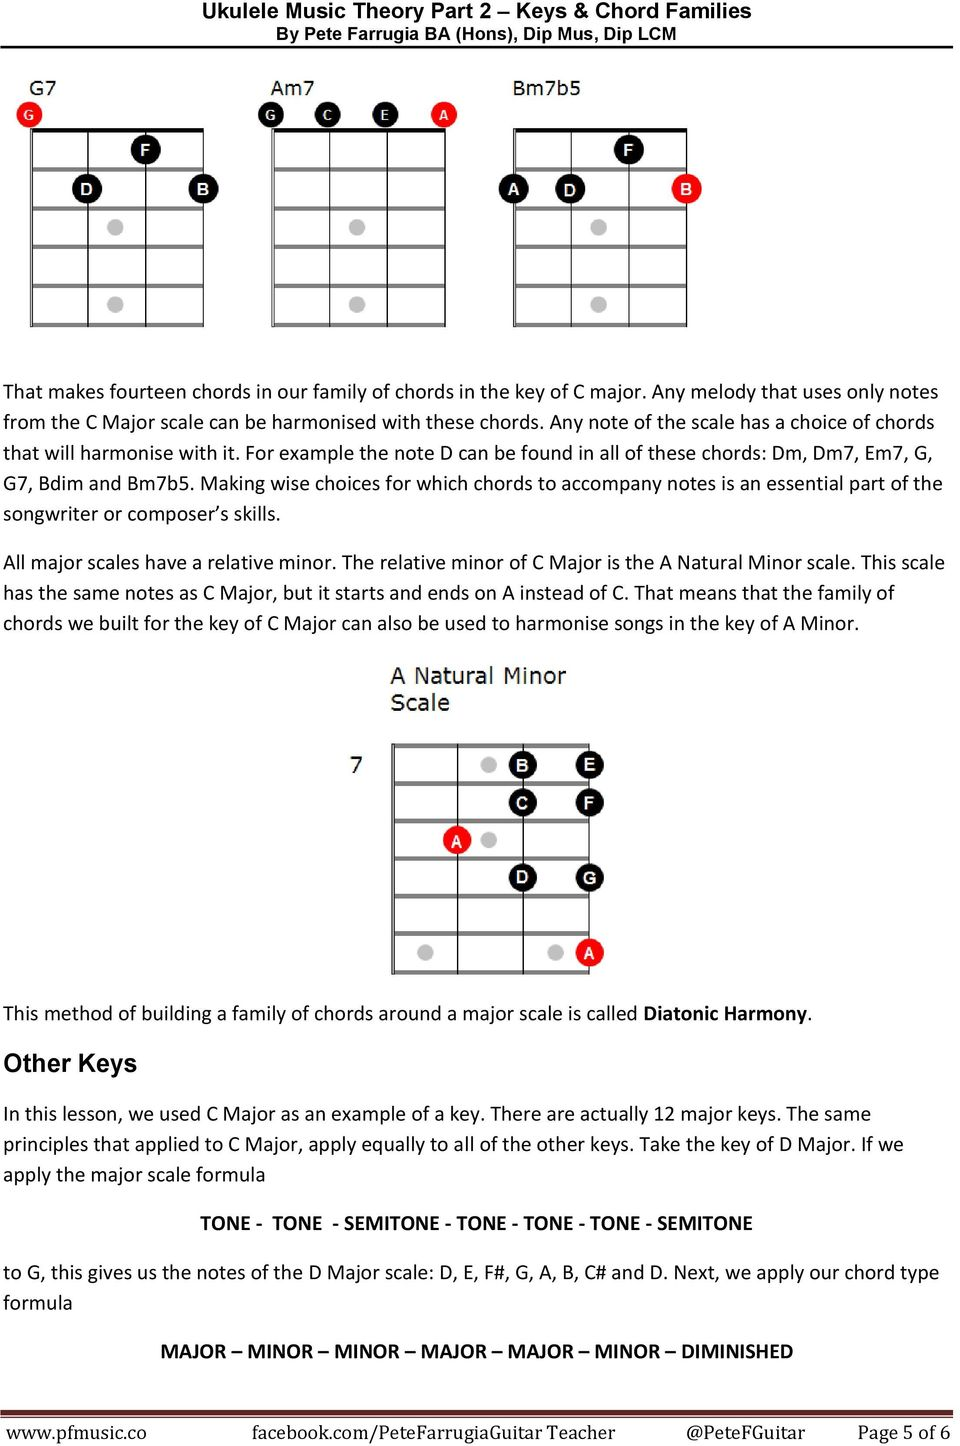 Ukulele Music Theory Part 2 Keys Chord Families By Pete Farrugia